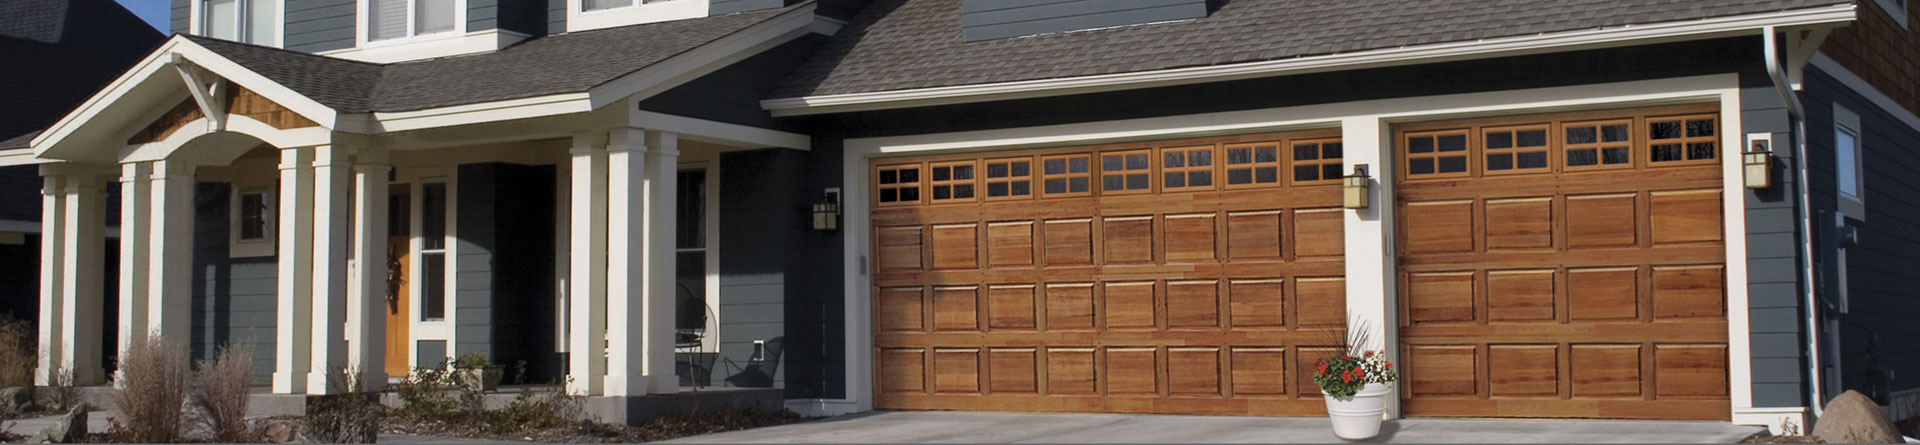 Fireplace Repair Troy Mi Garage Door Fireplace Tips Promotions Overhead Door